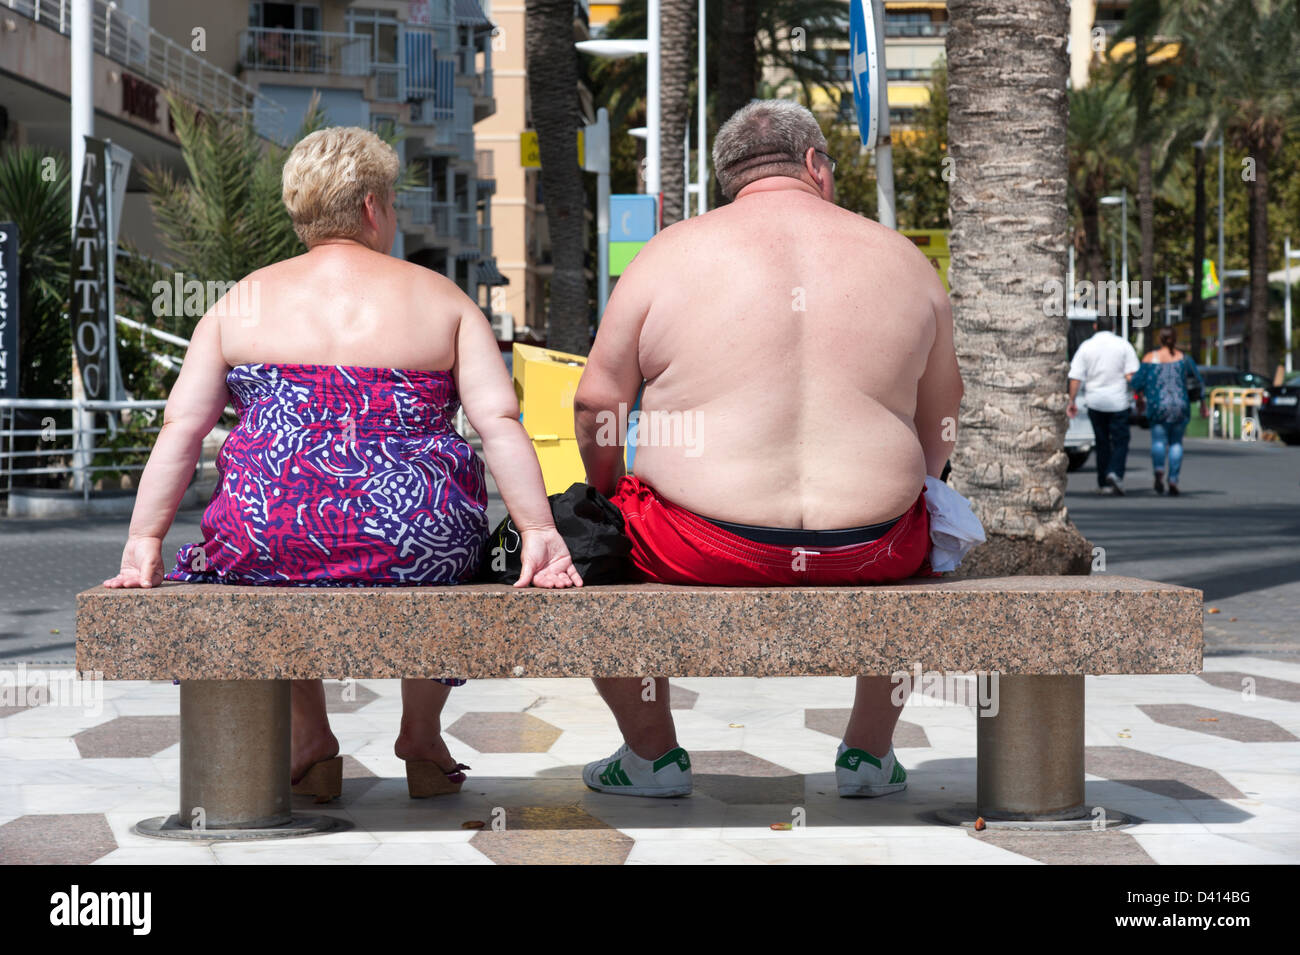 Overweight British couple on the waterfront in Benidorm, Costa Blanca, Spain - Stock Image